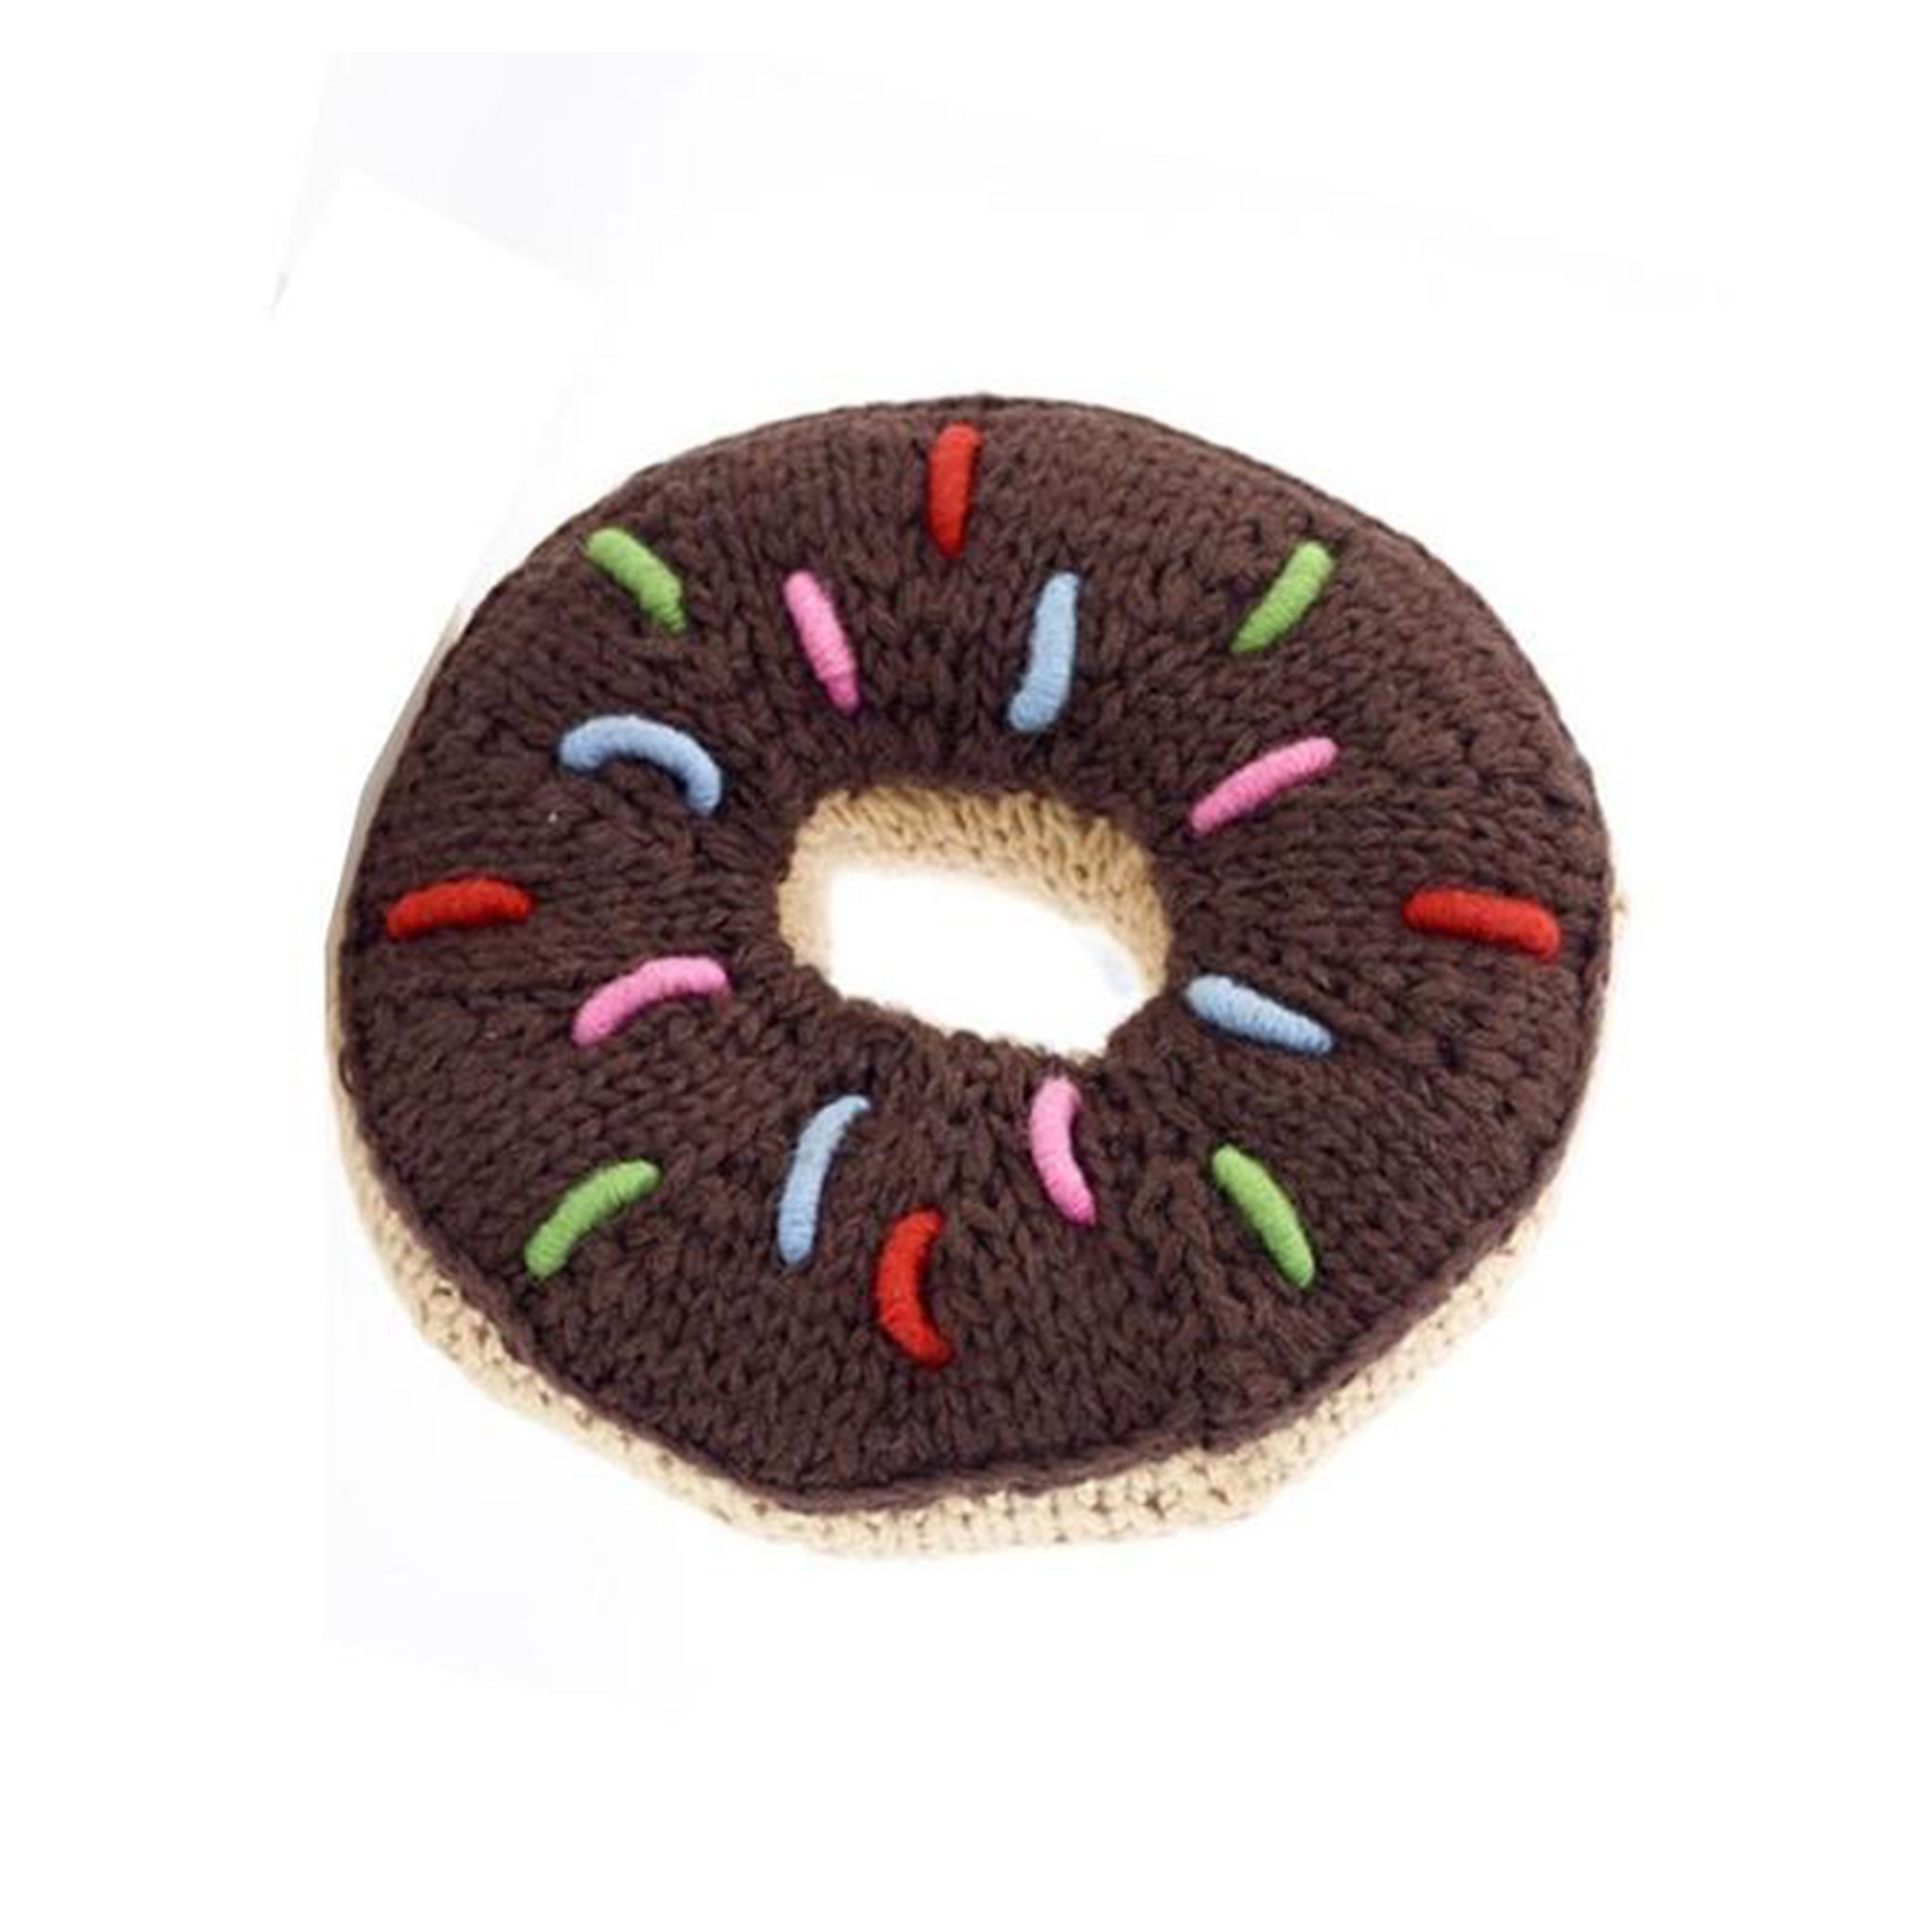 Pebblechild Knit Chocolate Donut Rattle